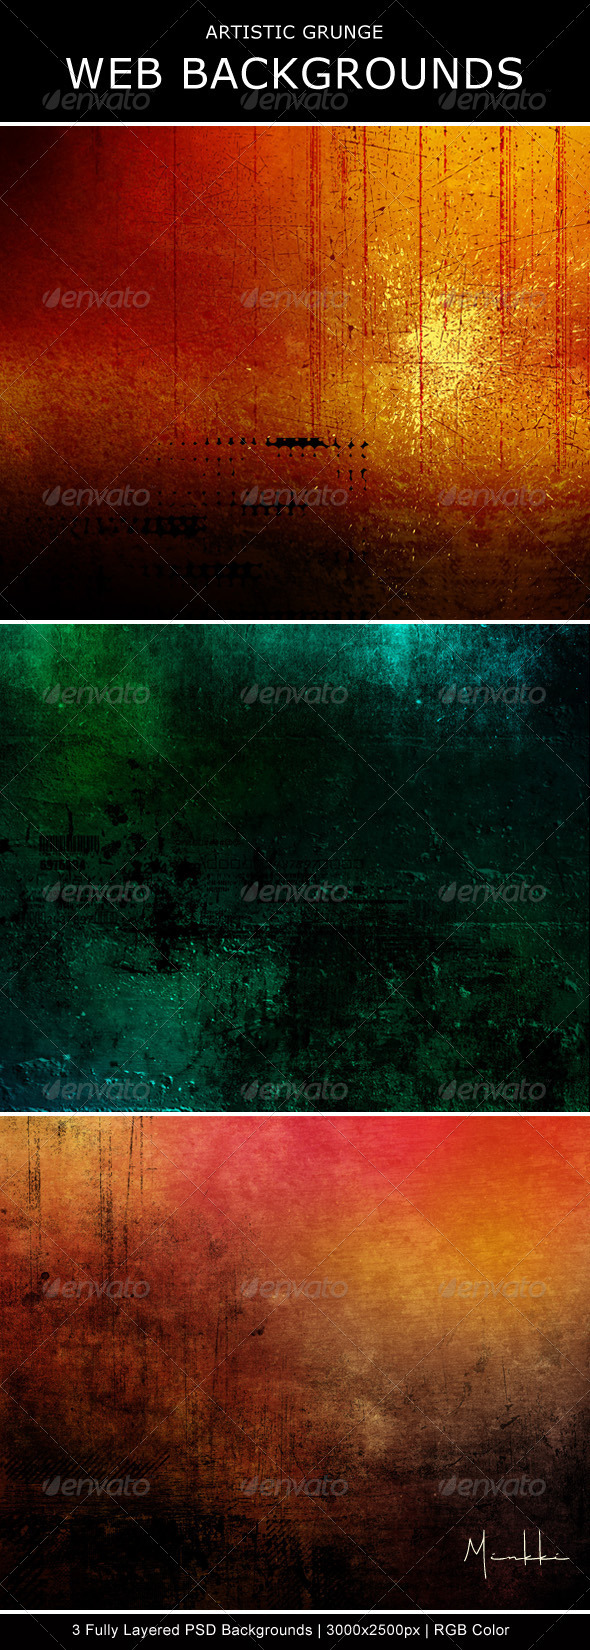 Artistic Grunge Web Backgrounds - Backgrounds Graphics